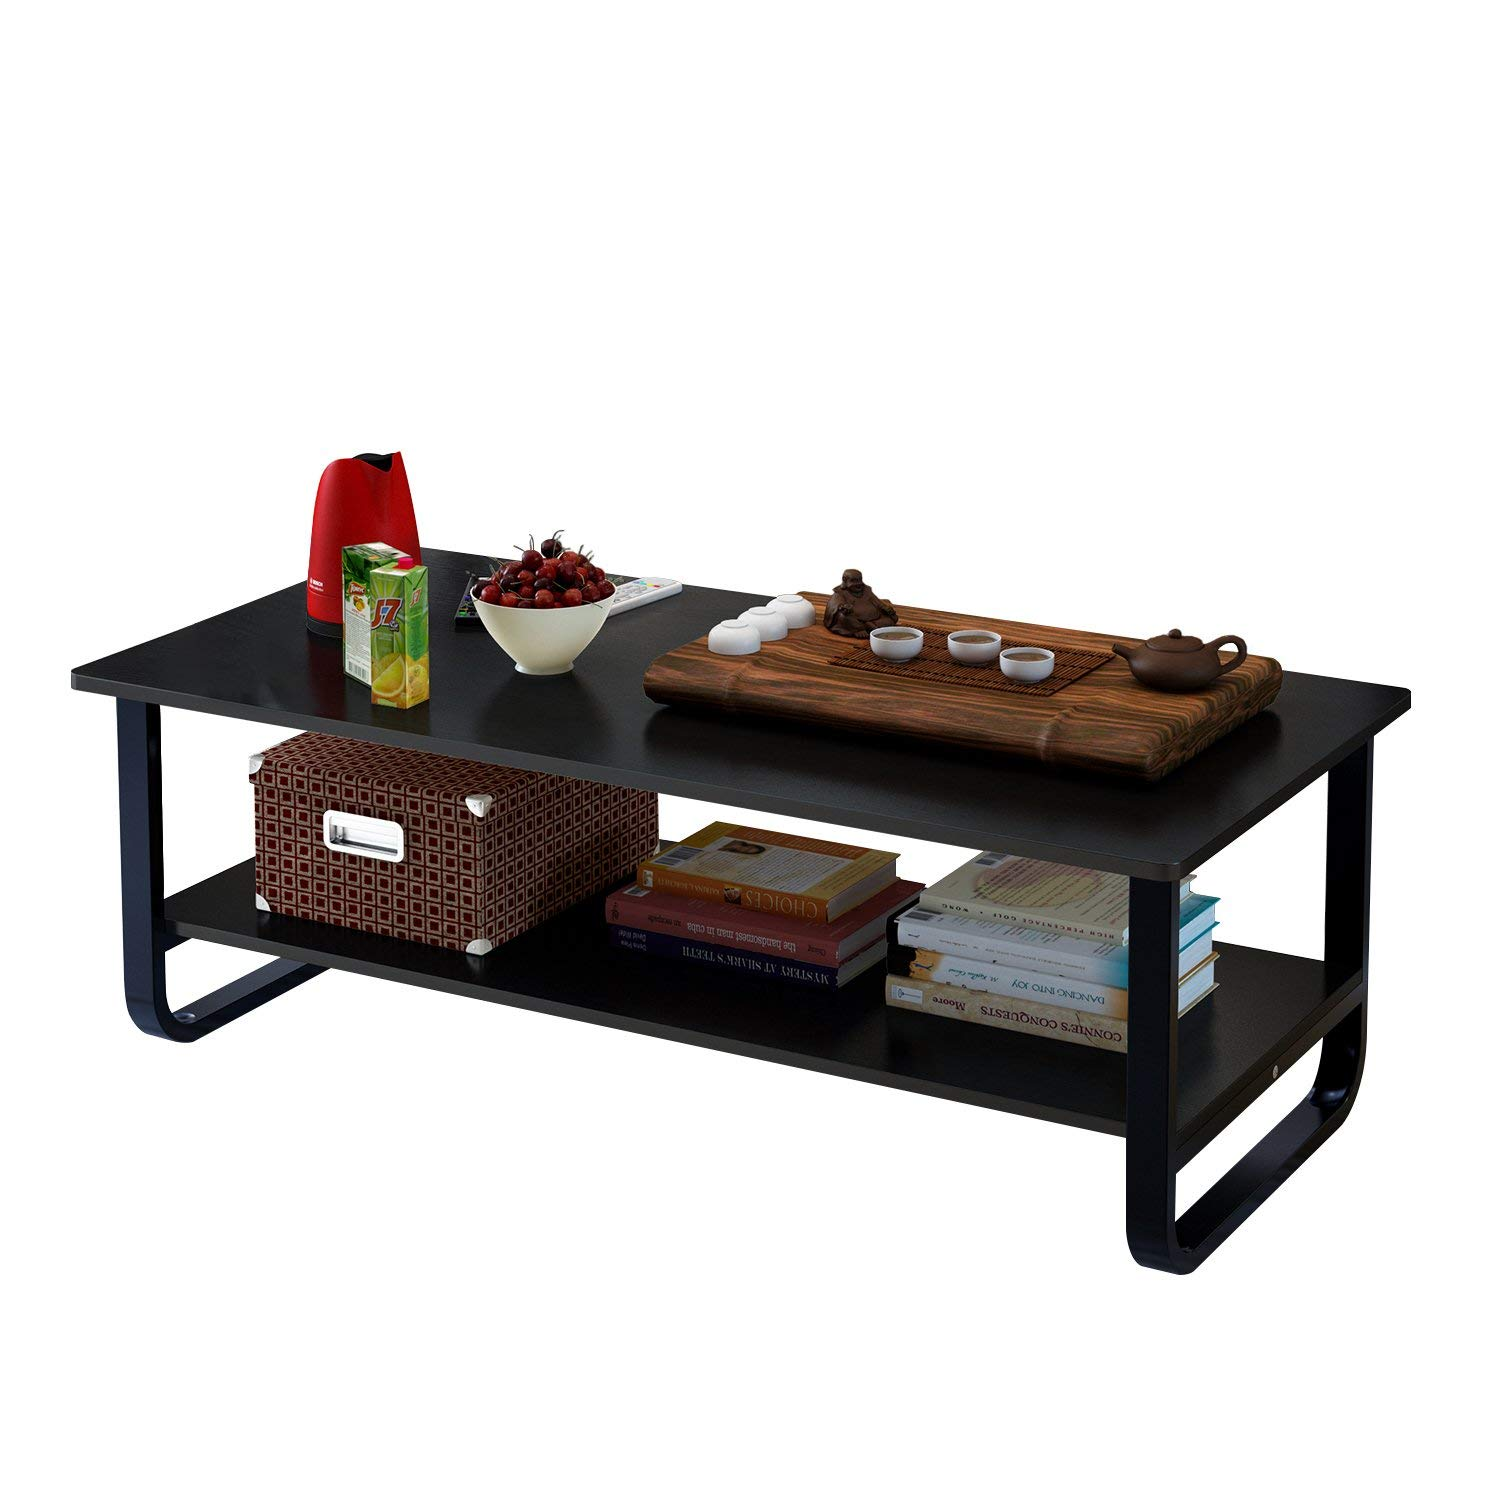 Jerry & Maggie - Tea Table Coffee Table Desk - Multi Function Wood & Steel Living room Desk - 2 Tier Polished Surface | Black